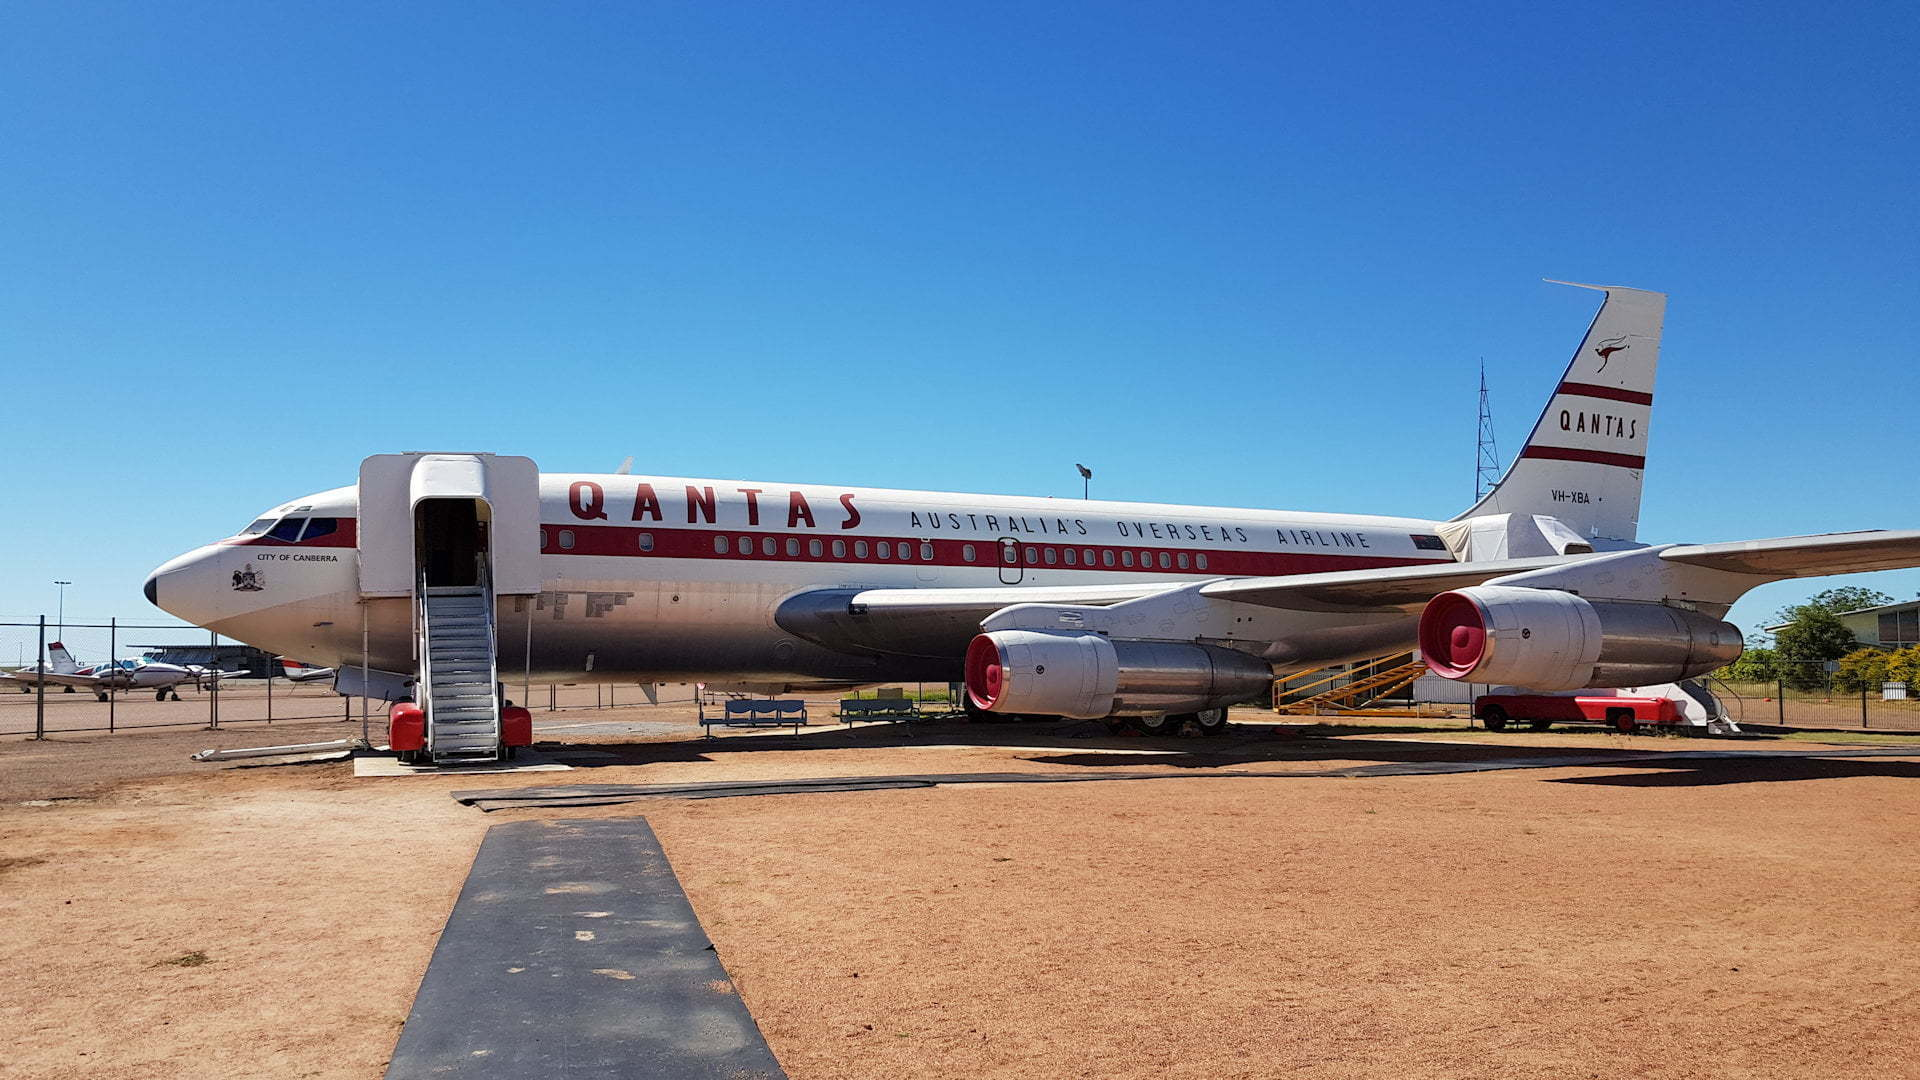 Boing 707 at QANTAS Founders Outback Museum in Longreach